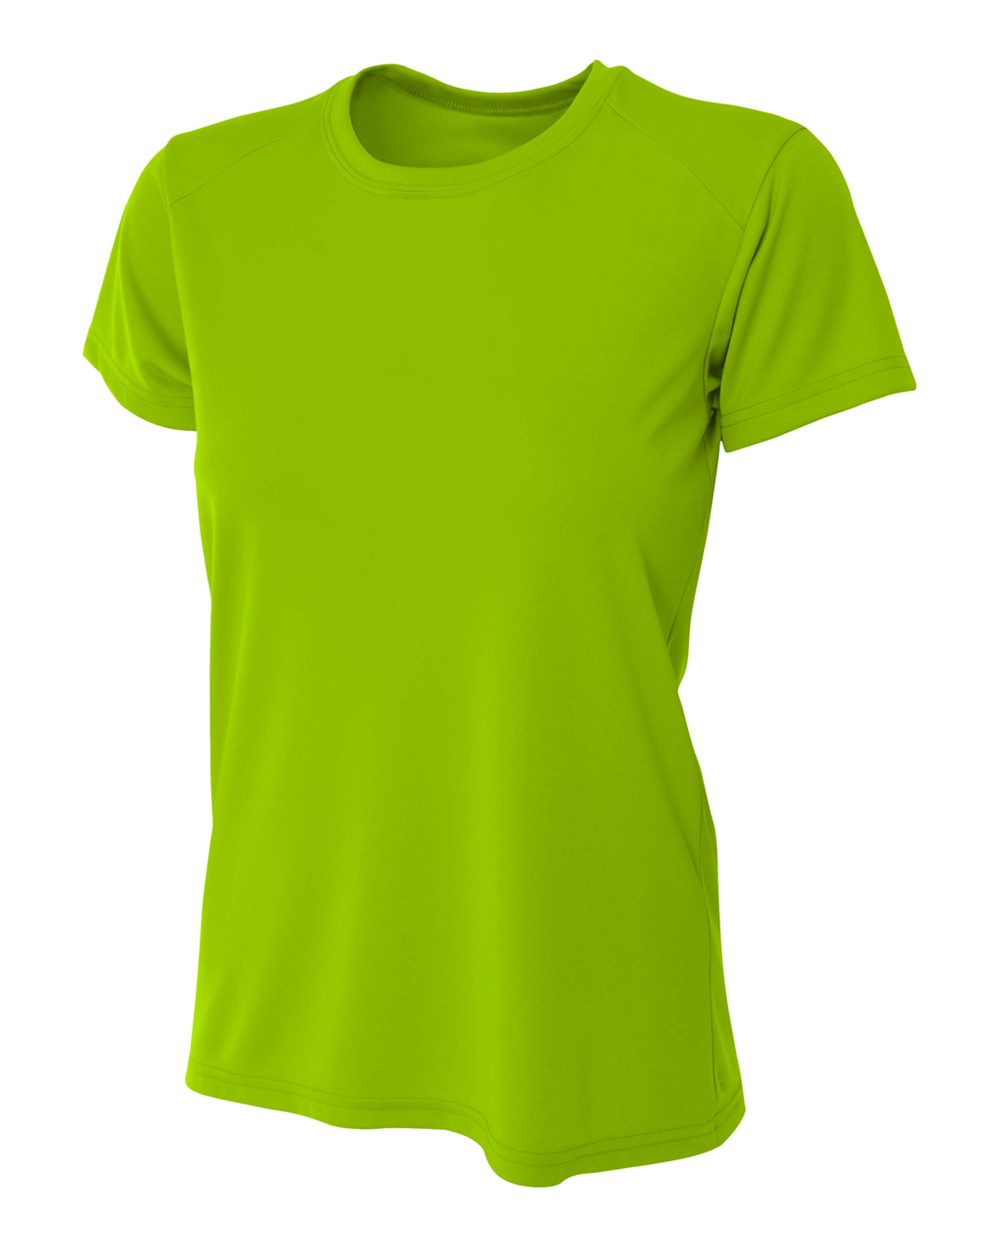 womens-polo-mwicking-lime-green.jpg